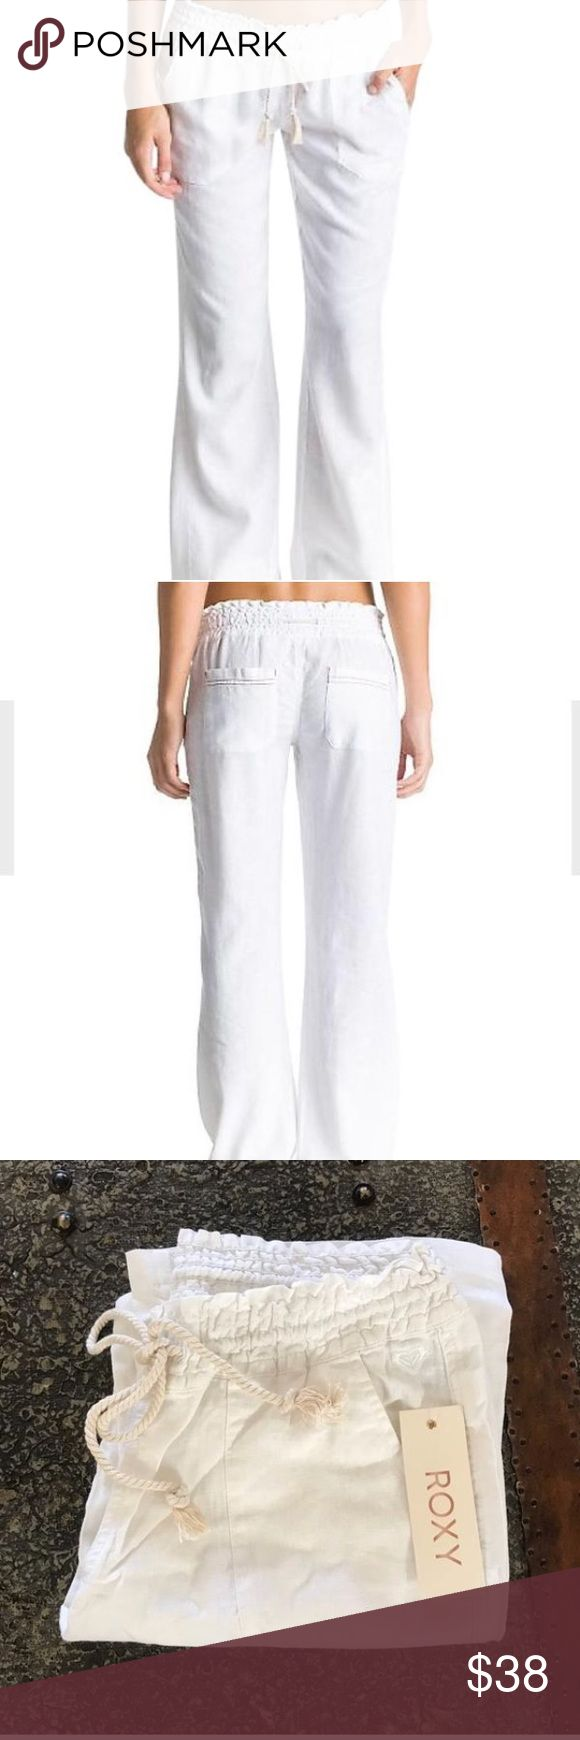 ROXY White Beach pants size Large NWT Roxy Oceanside Pant. One of Roxy's bestsellers! This woven beach pant has a drawcord smocked waistband and back pockets. 55% Flax Linen, 45% Viscoe Roxy Pants Boot Cut & Flare